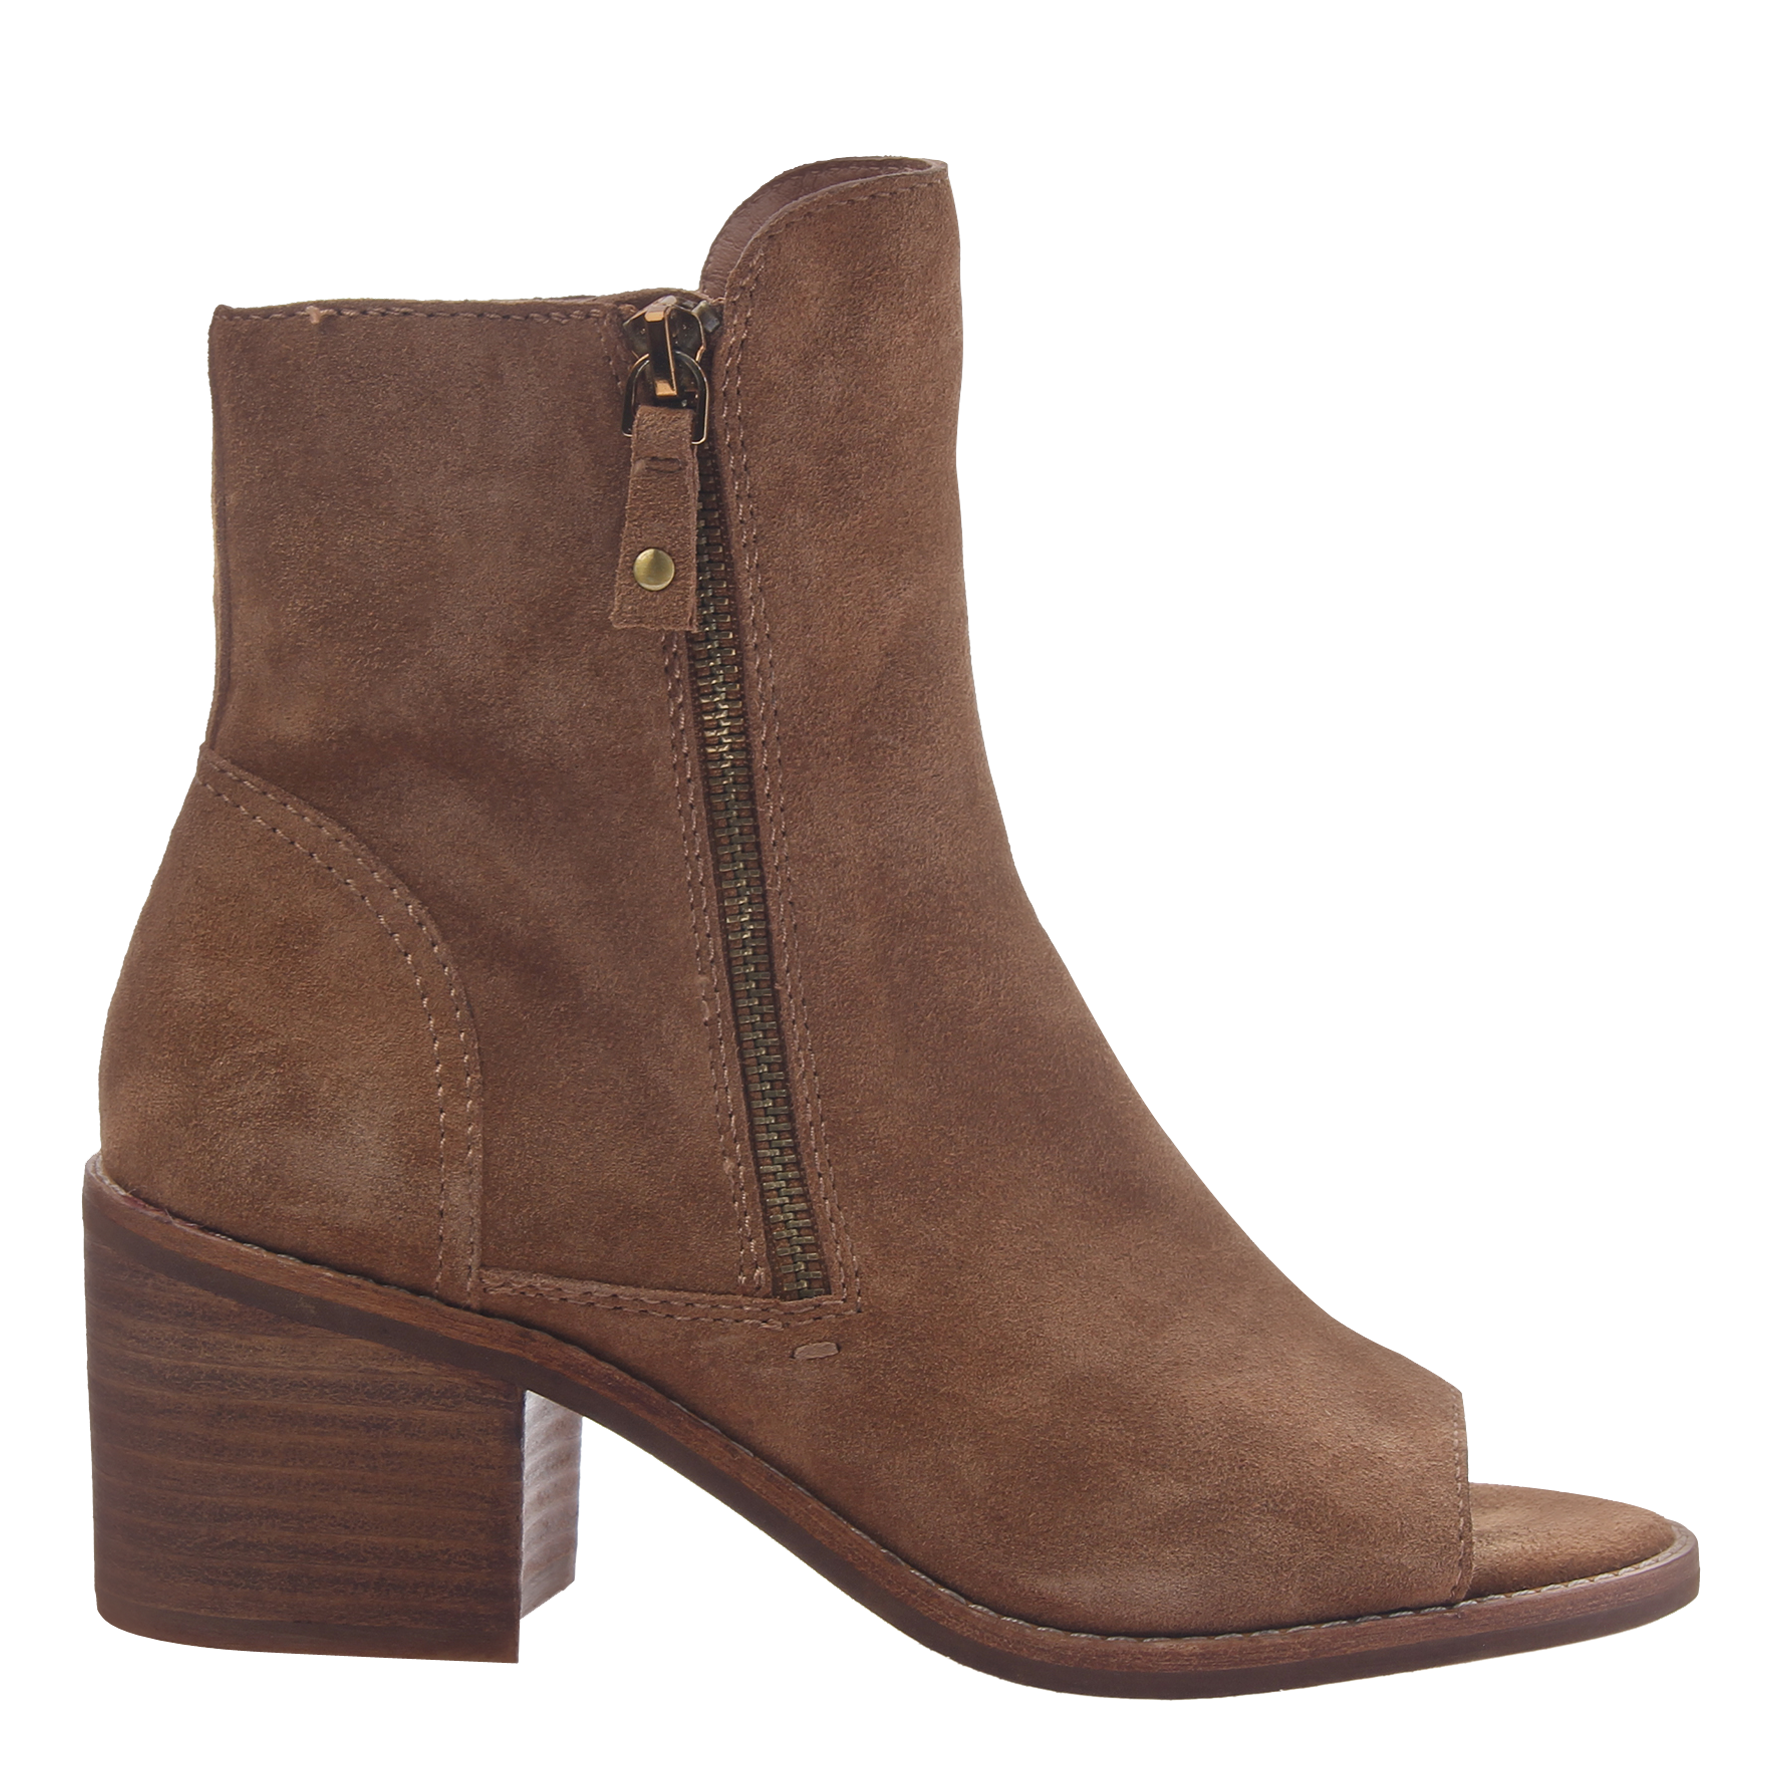 Womens open toe booties Nina in honey side view